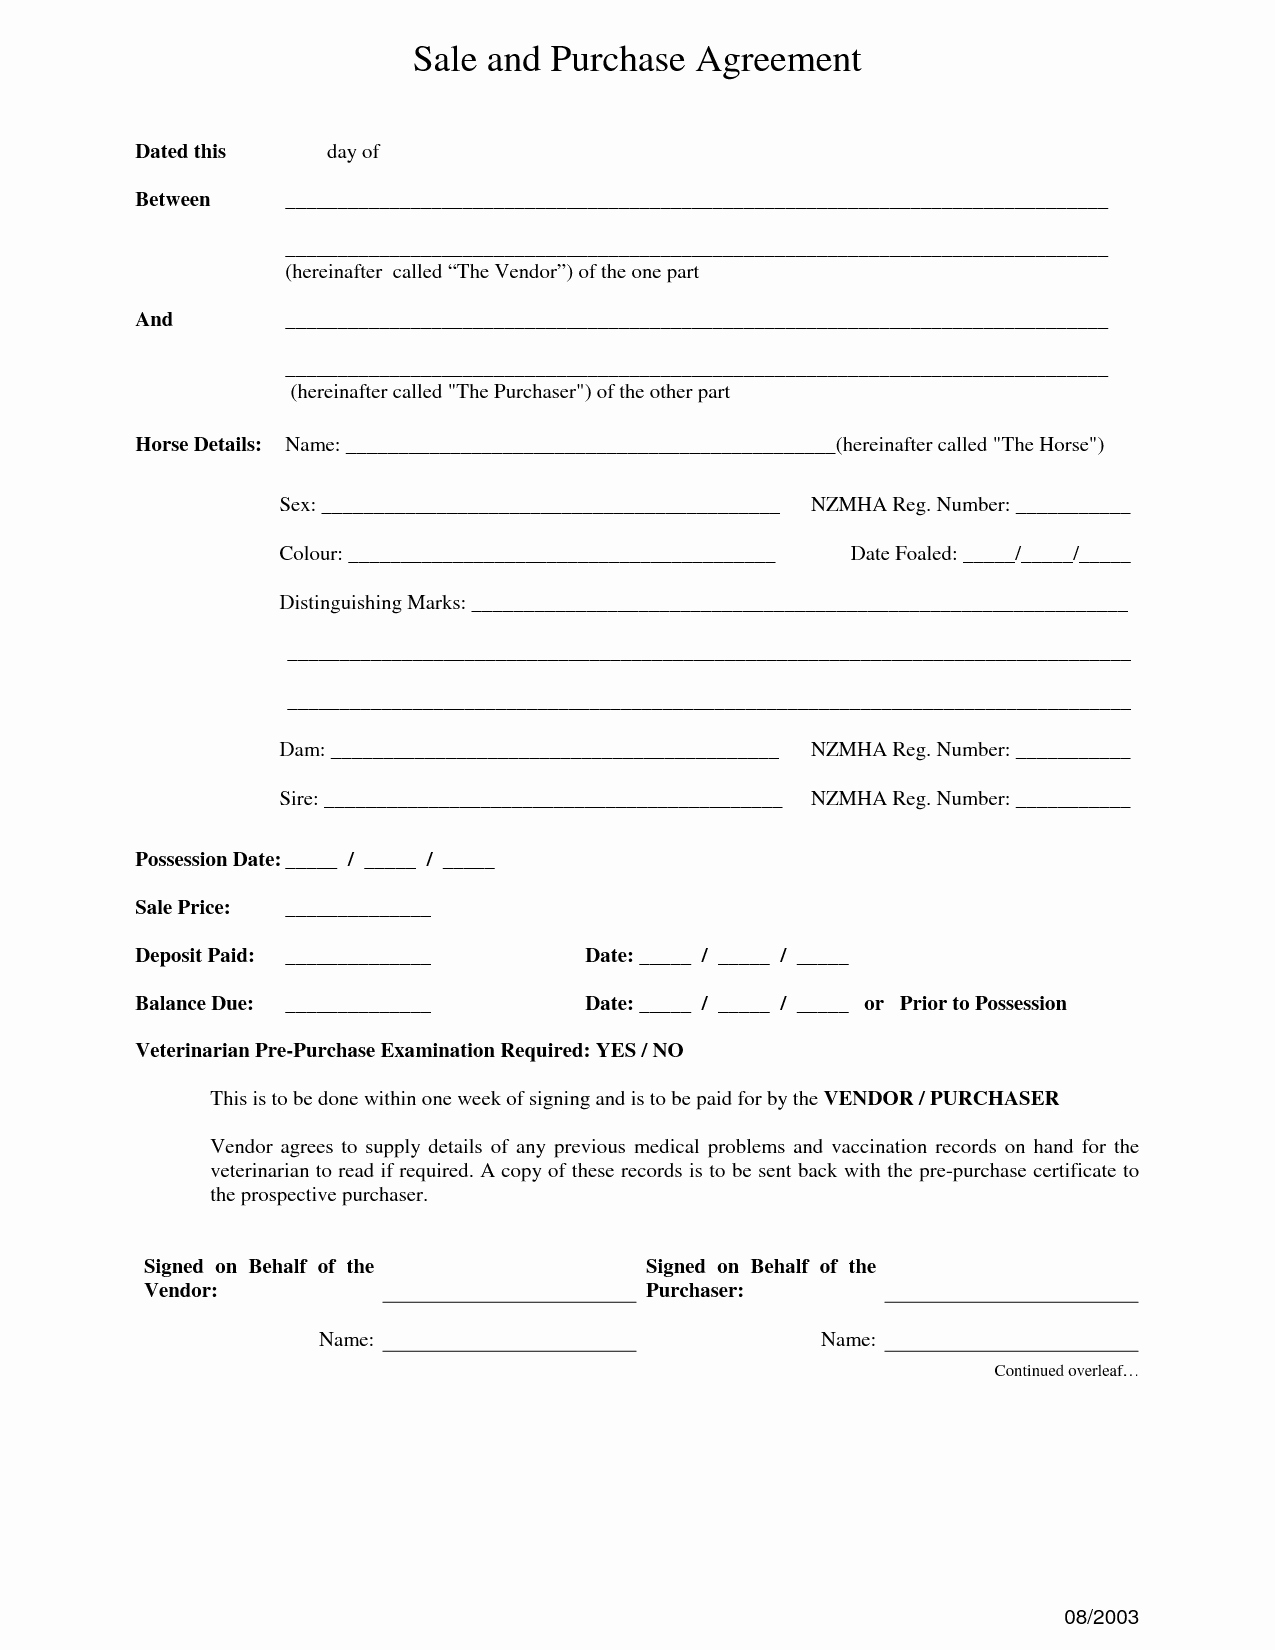 Purchase and Sale Agreement form Best Of 30 Fast Sales and Purchase Agreement Sample Yu A